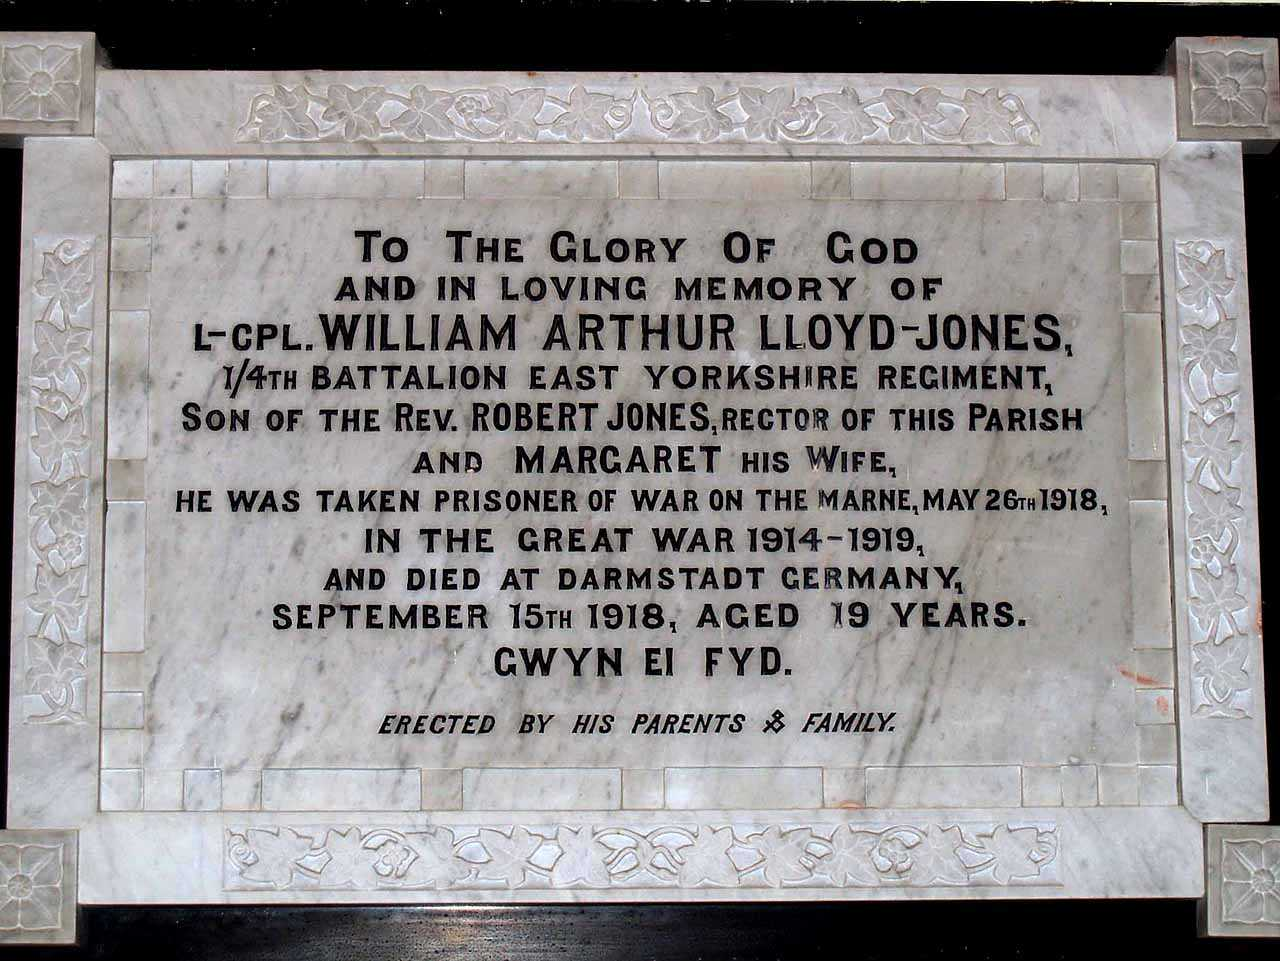 Anglesey, Bodffordd, Heneglwys Church Memorial to Lance Corporal William Arthur Lloyd-Jones aged 19 as a prisoner of war - son of the Rector